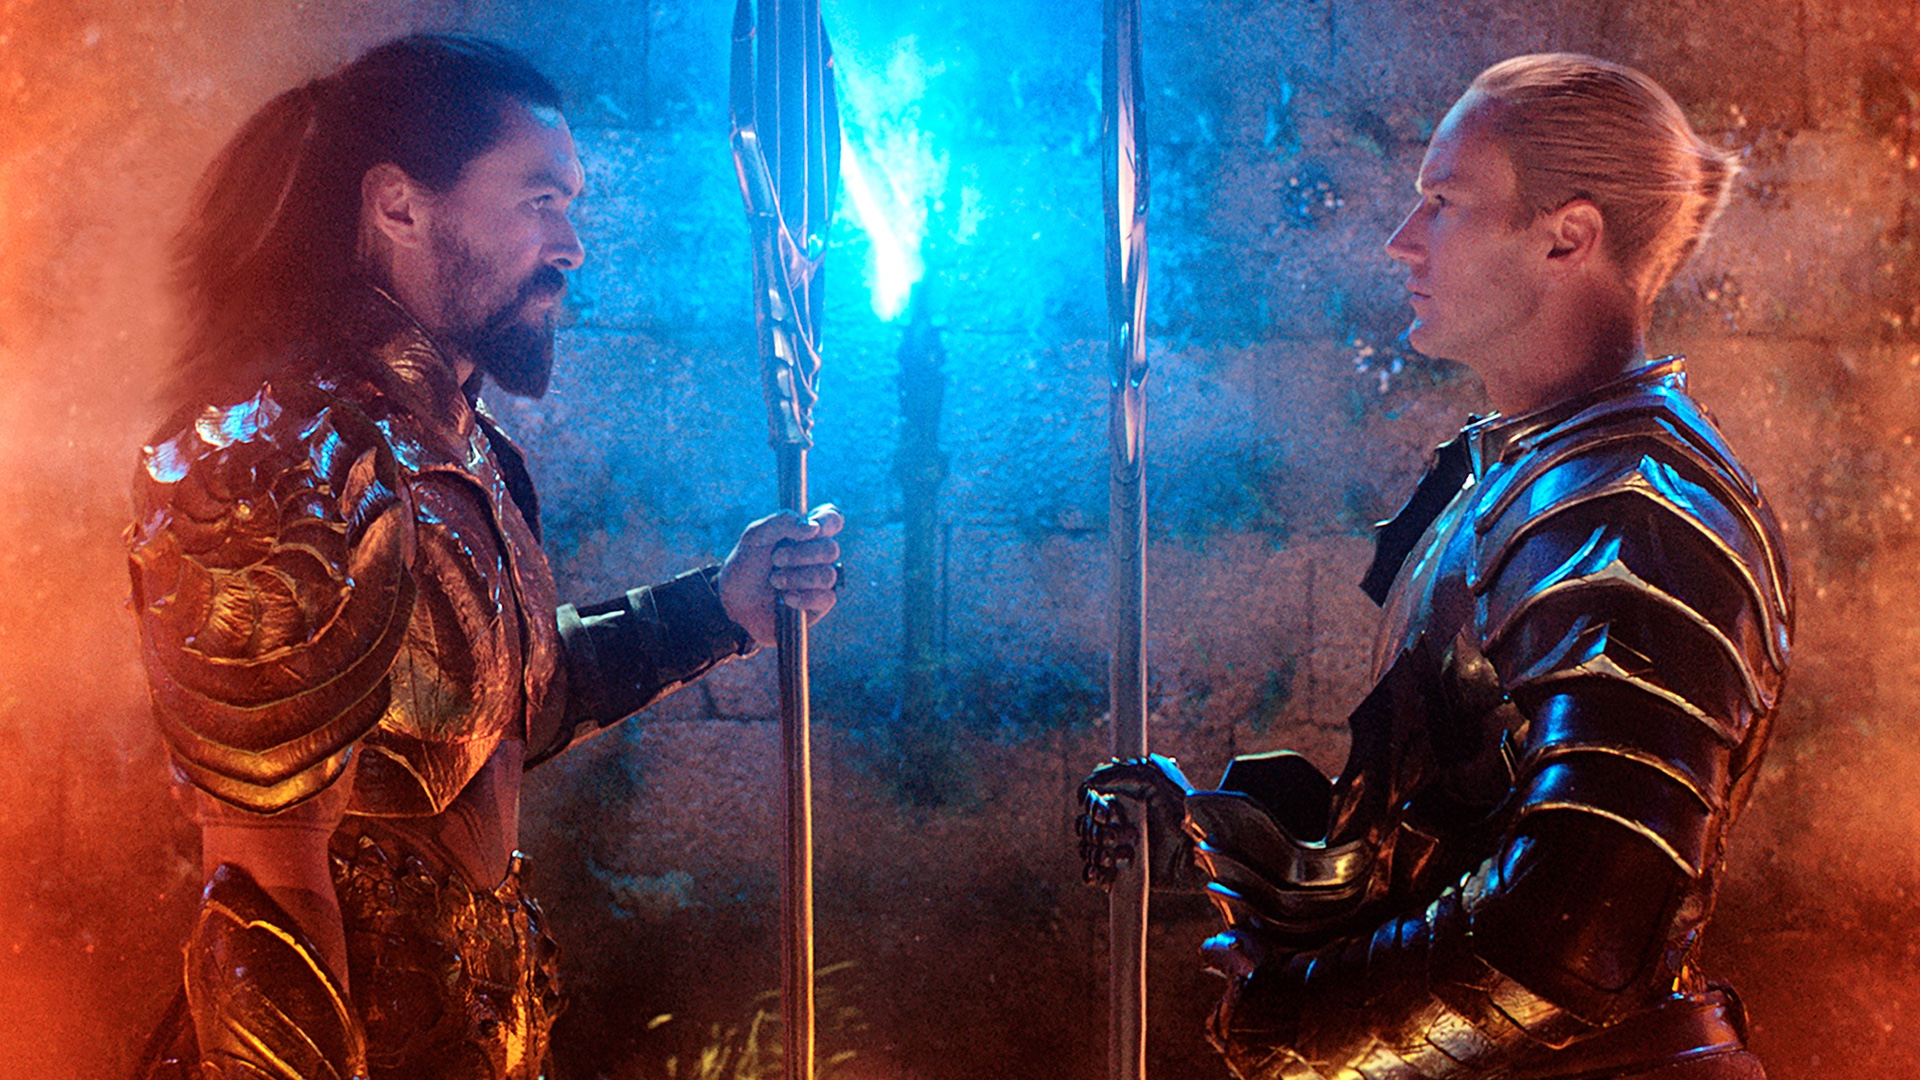 more-cool-new-aquaman-photos-show-patrick-wilsons-orm-come-face-to-face-with-aquaman-social.jpg